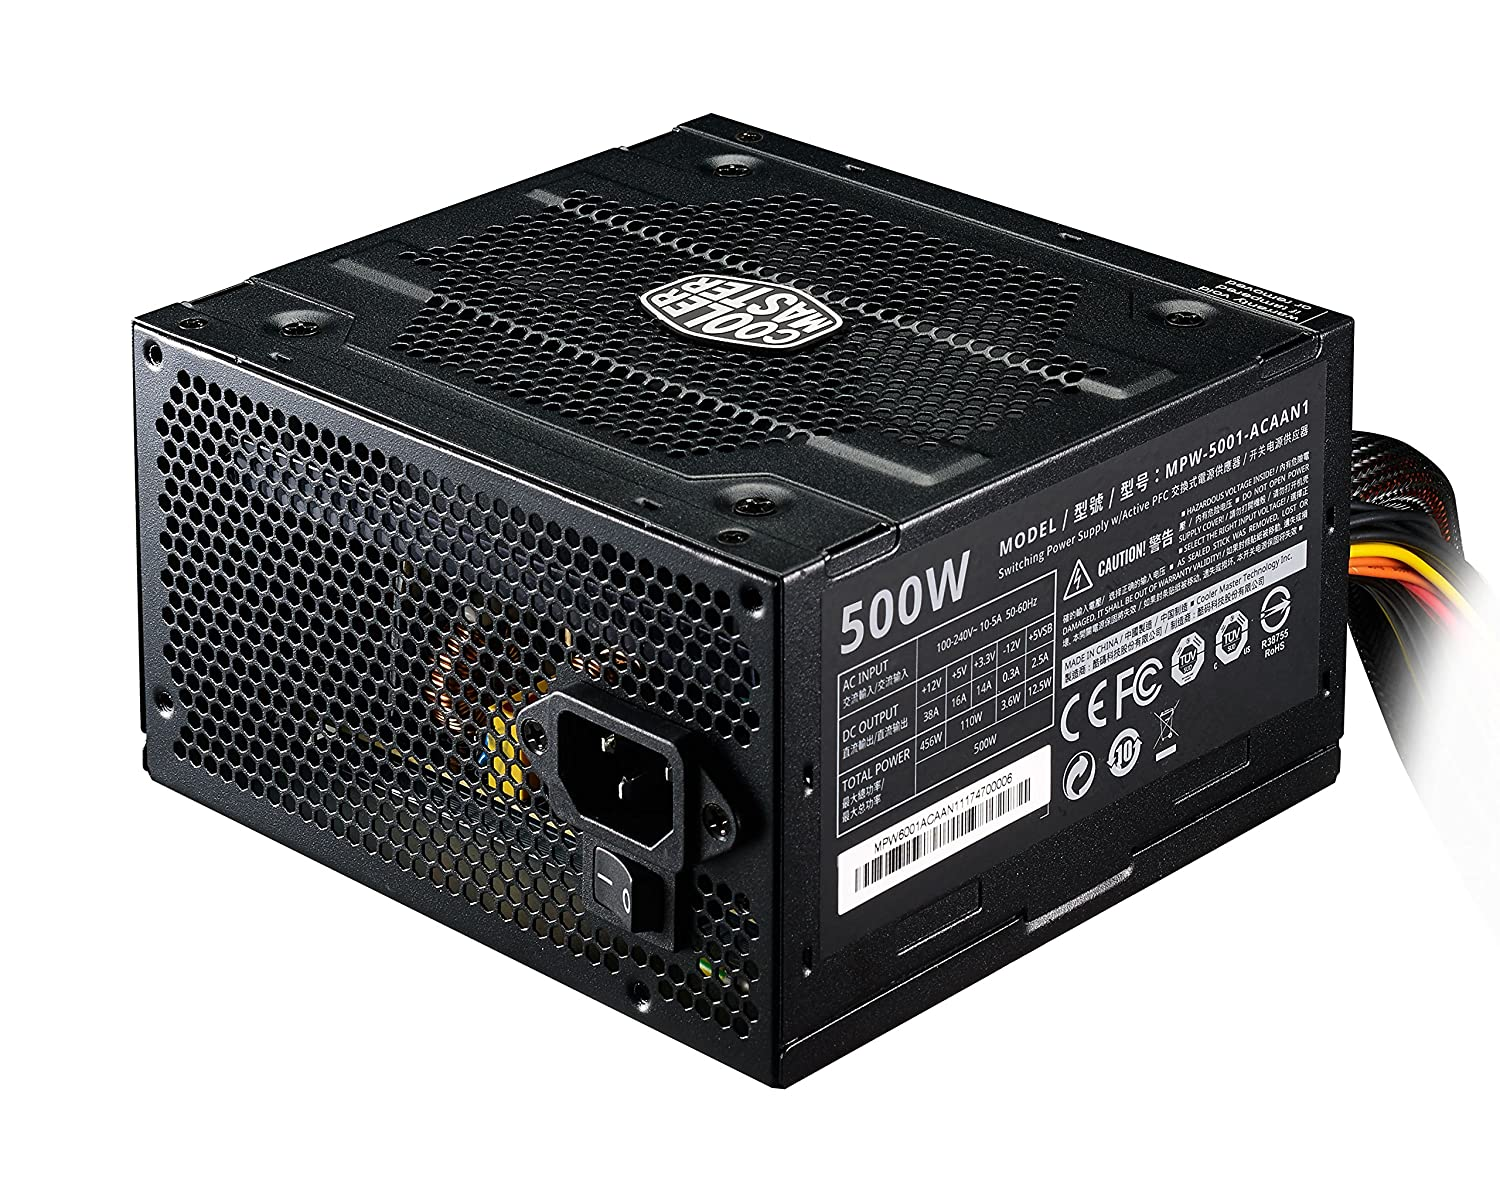 Cooler Master Elite V3 500 Watts Atx Power Supply Quiet Hand Tool Wire Harness 120mm Fan Pci E Support 3 Year Warranty Black Computers Accessories